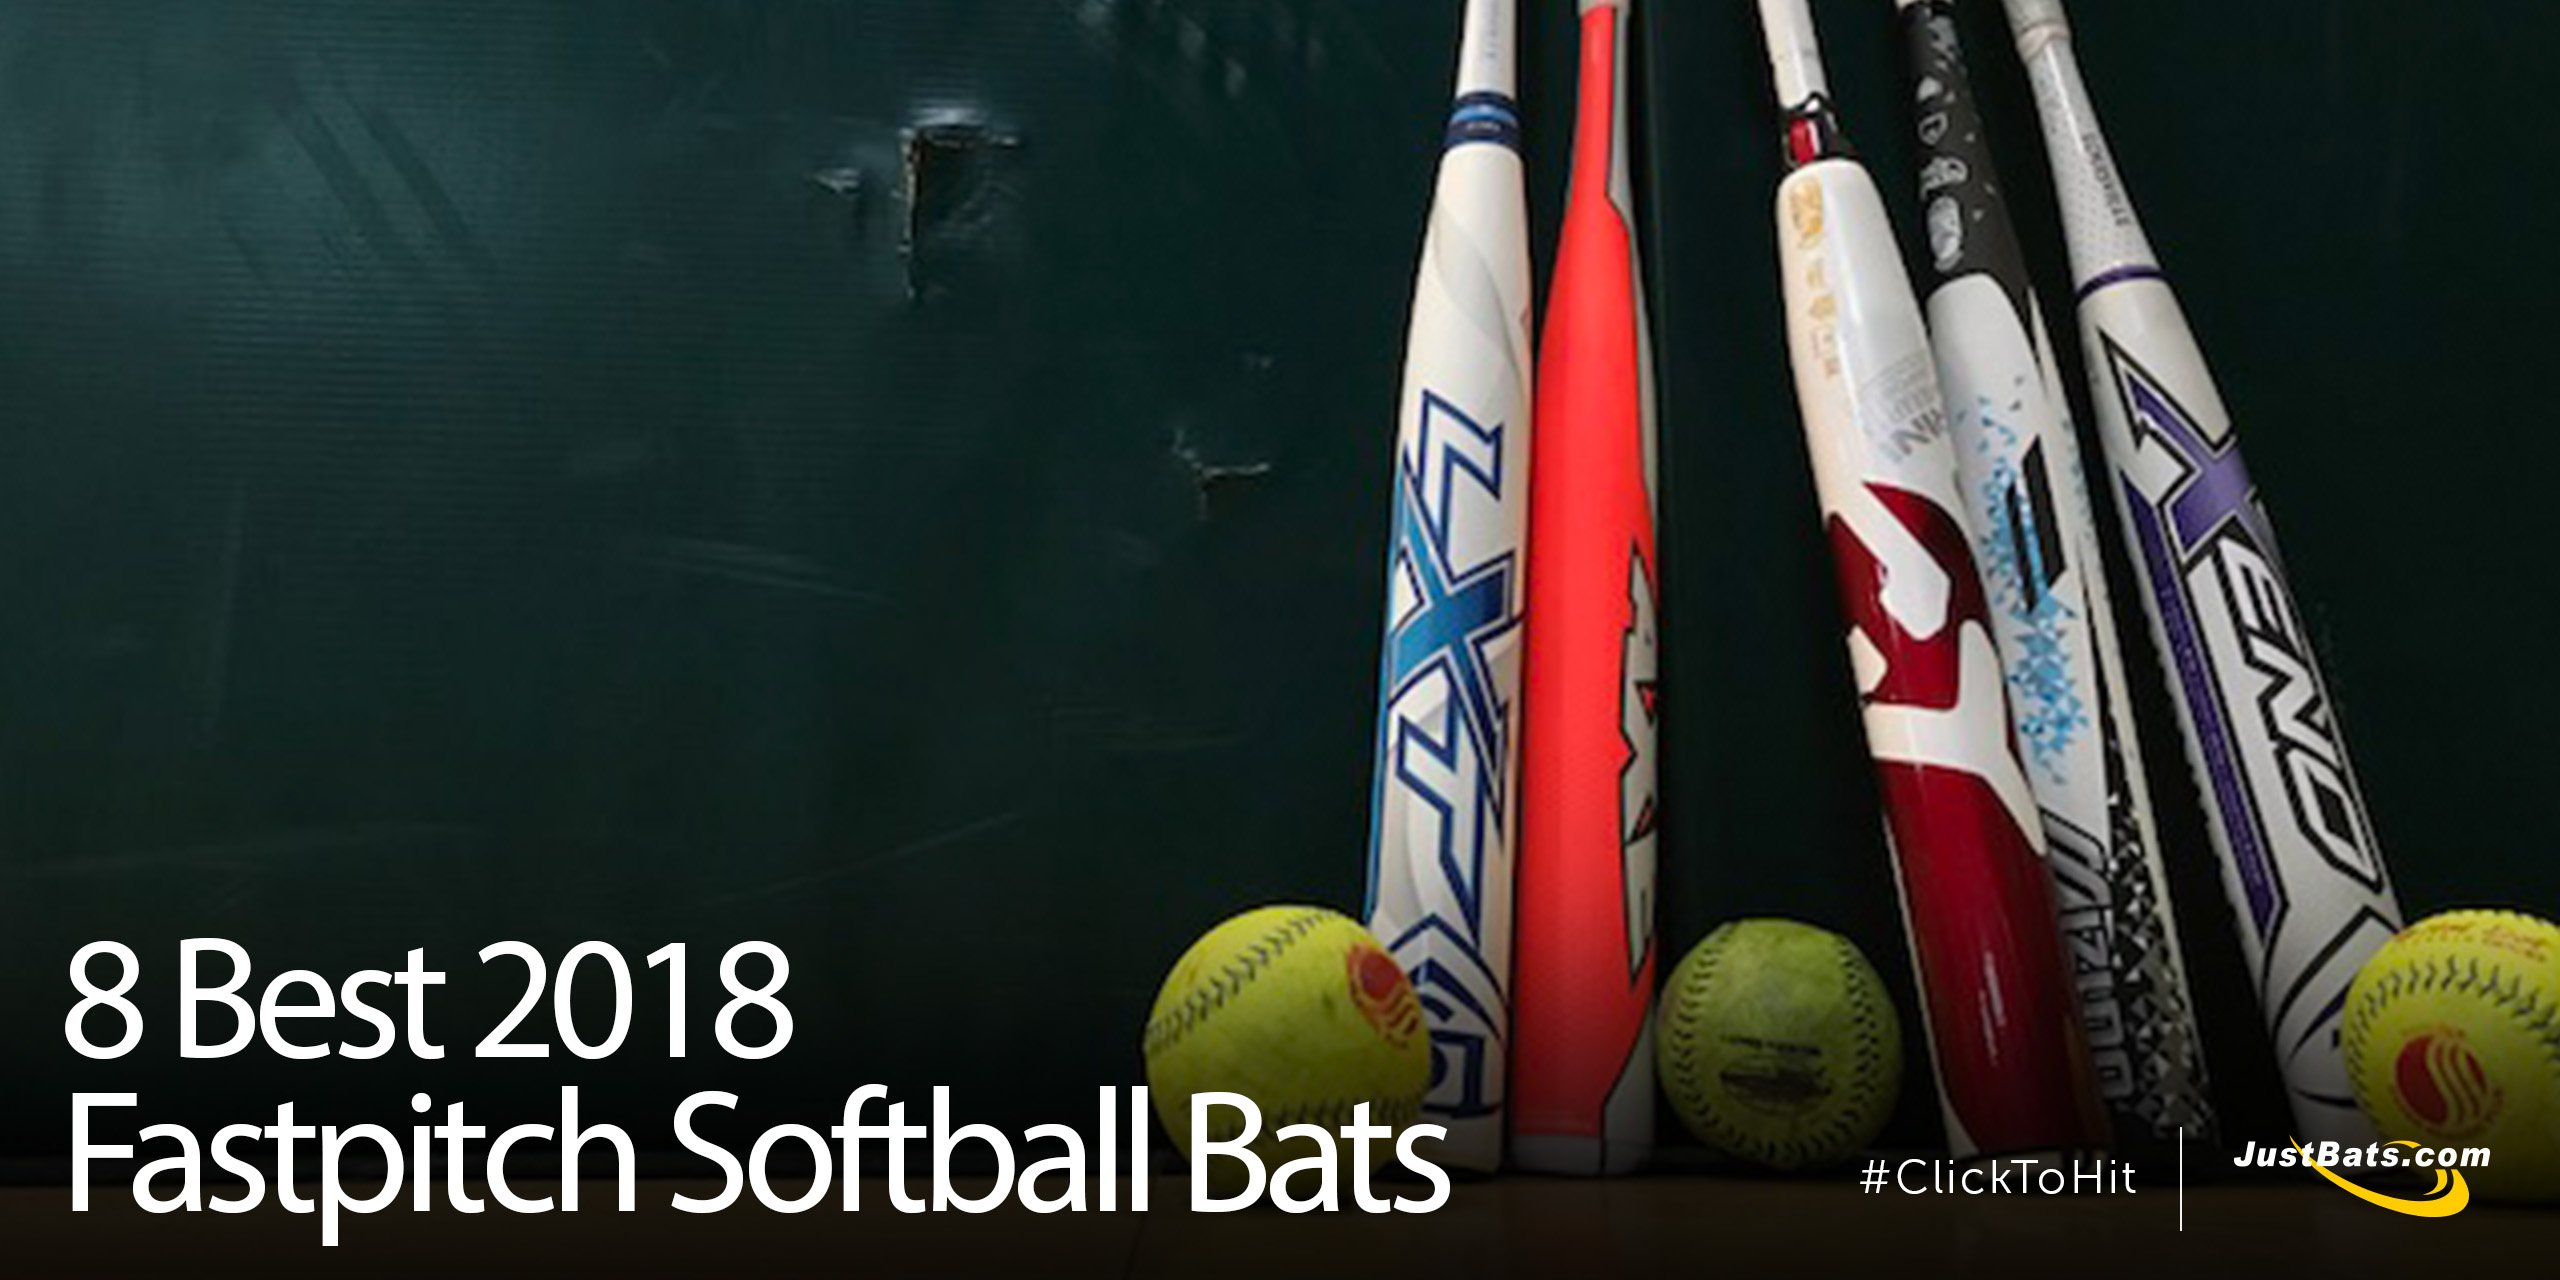 8 Best 2018 Fastpitch Bats - Blog.jpg